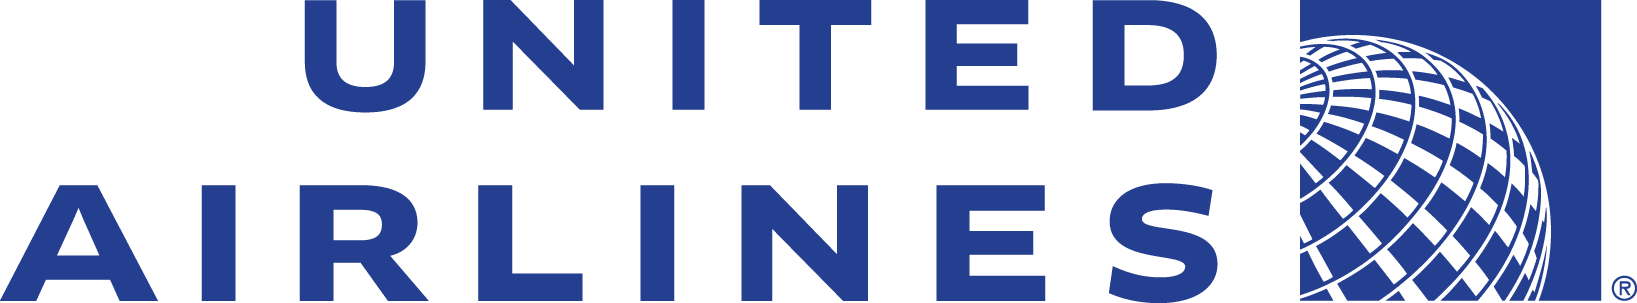 client  Grand Travel and Cruise united airlines logo png 1441098